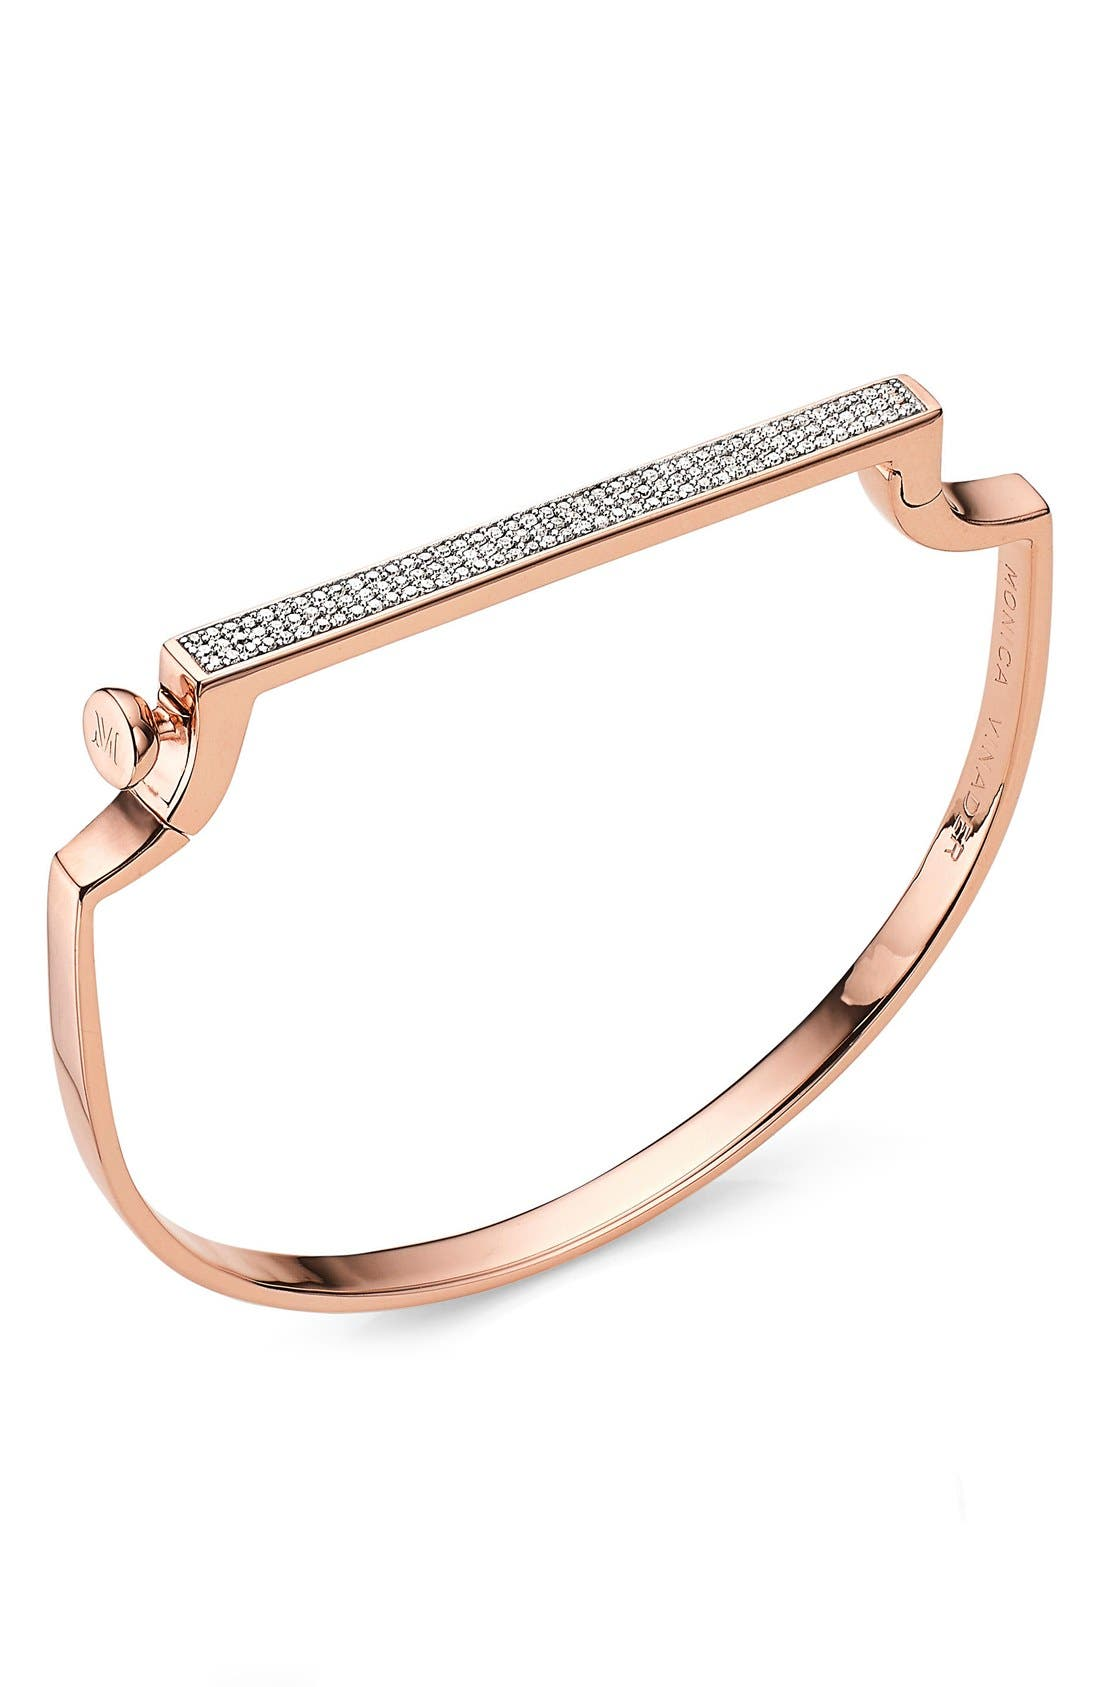 Signature Thin Diamond Bangle,                             Main thumbnail 1, color,                             Rose Gold/ Diamond